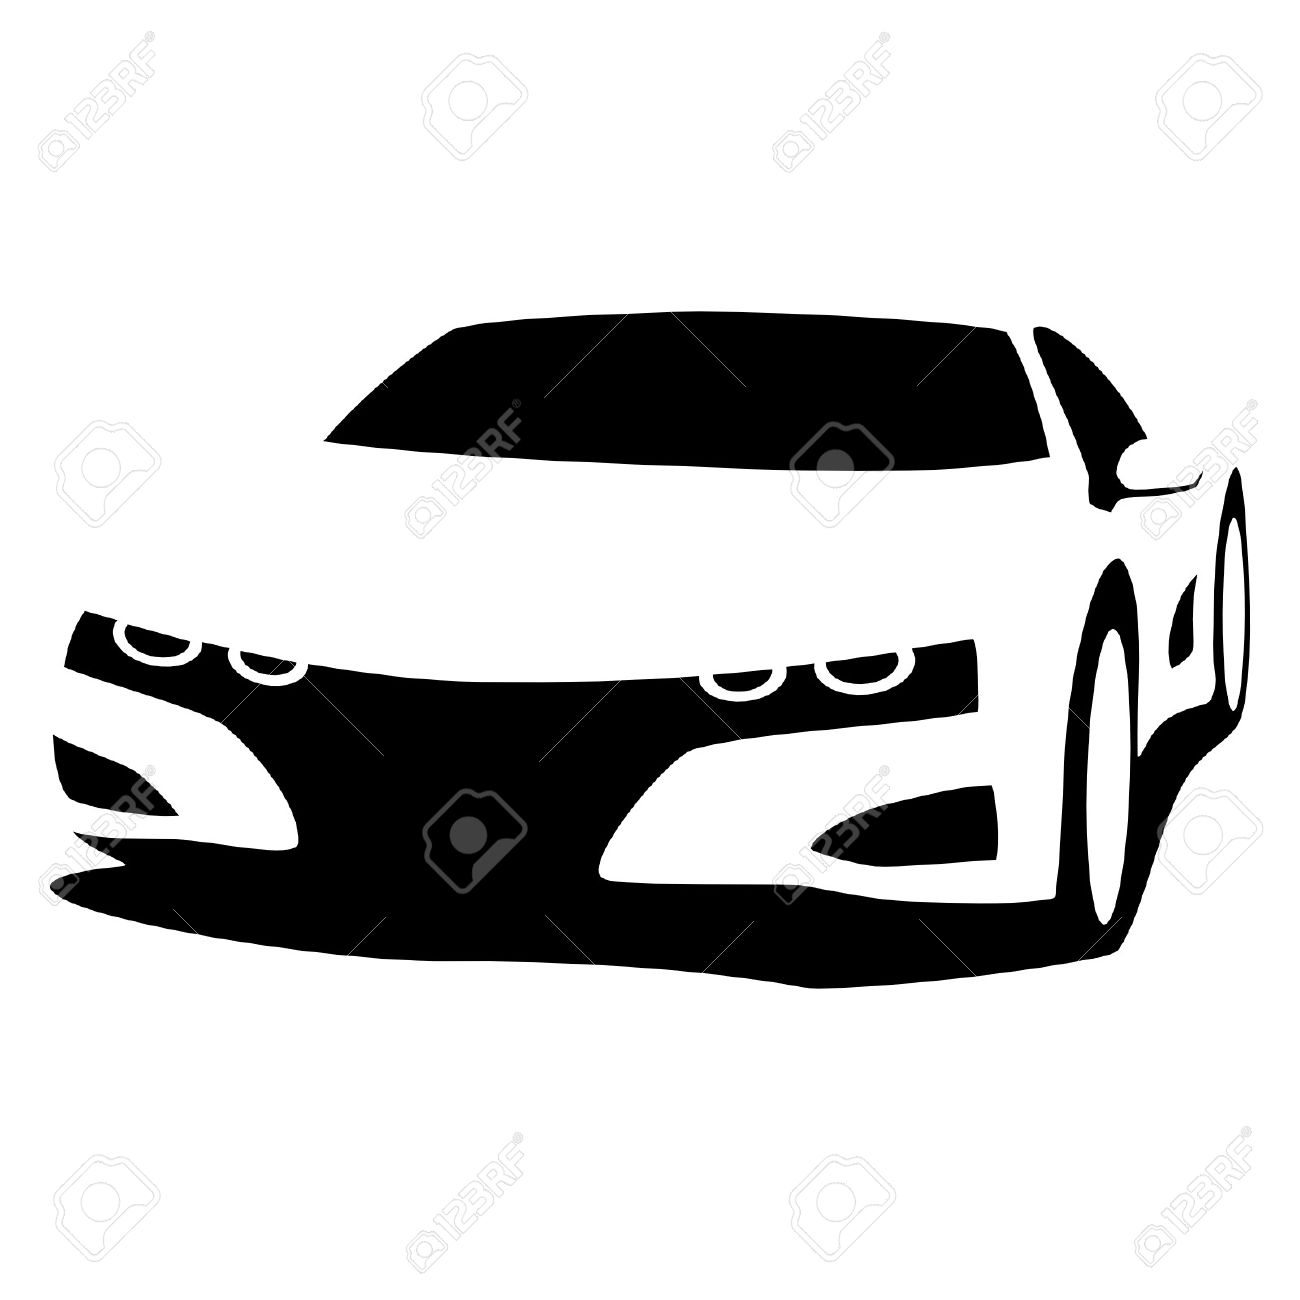 sports car silhouette royalty free cliparts vectors and stock rh 123rf com auto silhouette vector race car silhouette vector